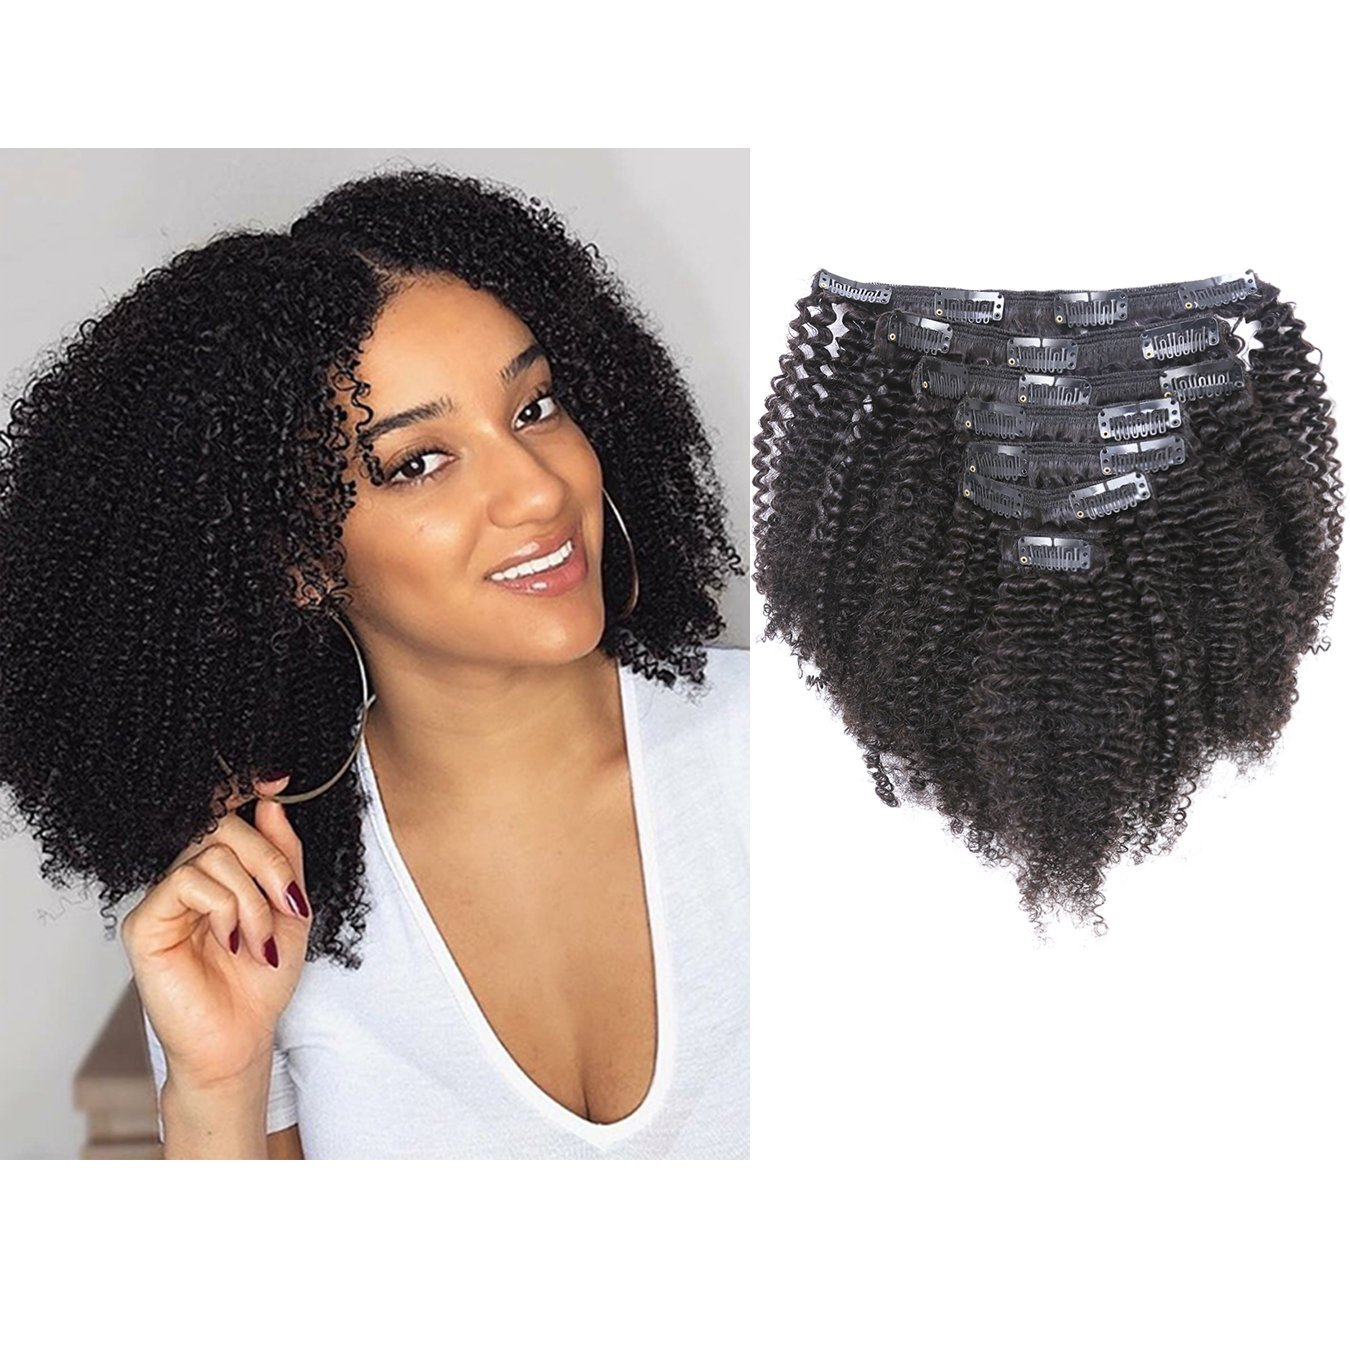 Anrosa Kinkys Curly Clip in Hair Extensions Real Natural Hair Afro Kinky Clip ins Human Hair 1B Natural Black for African American Black Women 3C 4A Type Thick Hair 120 Gram 16 Inch Remy Hair